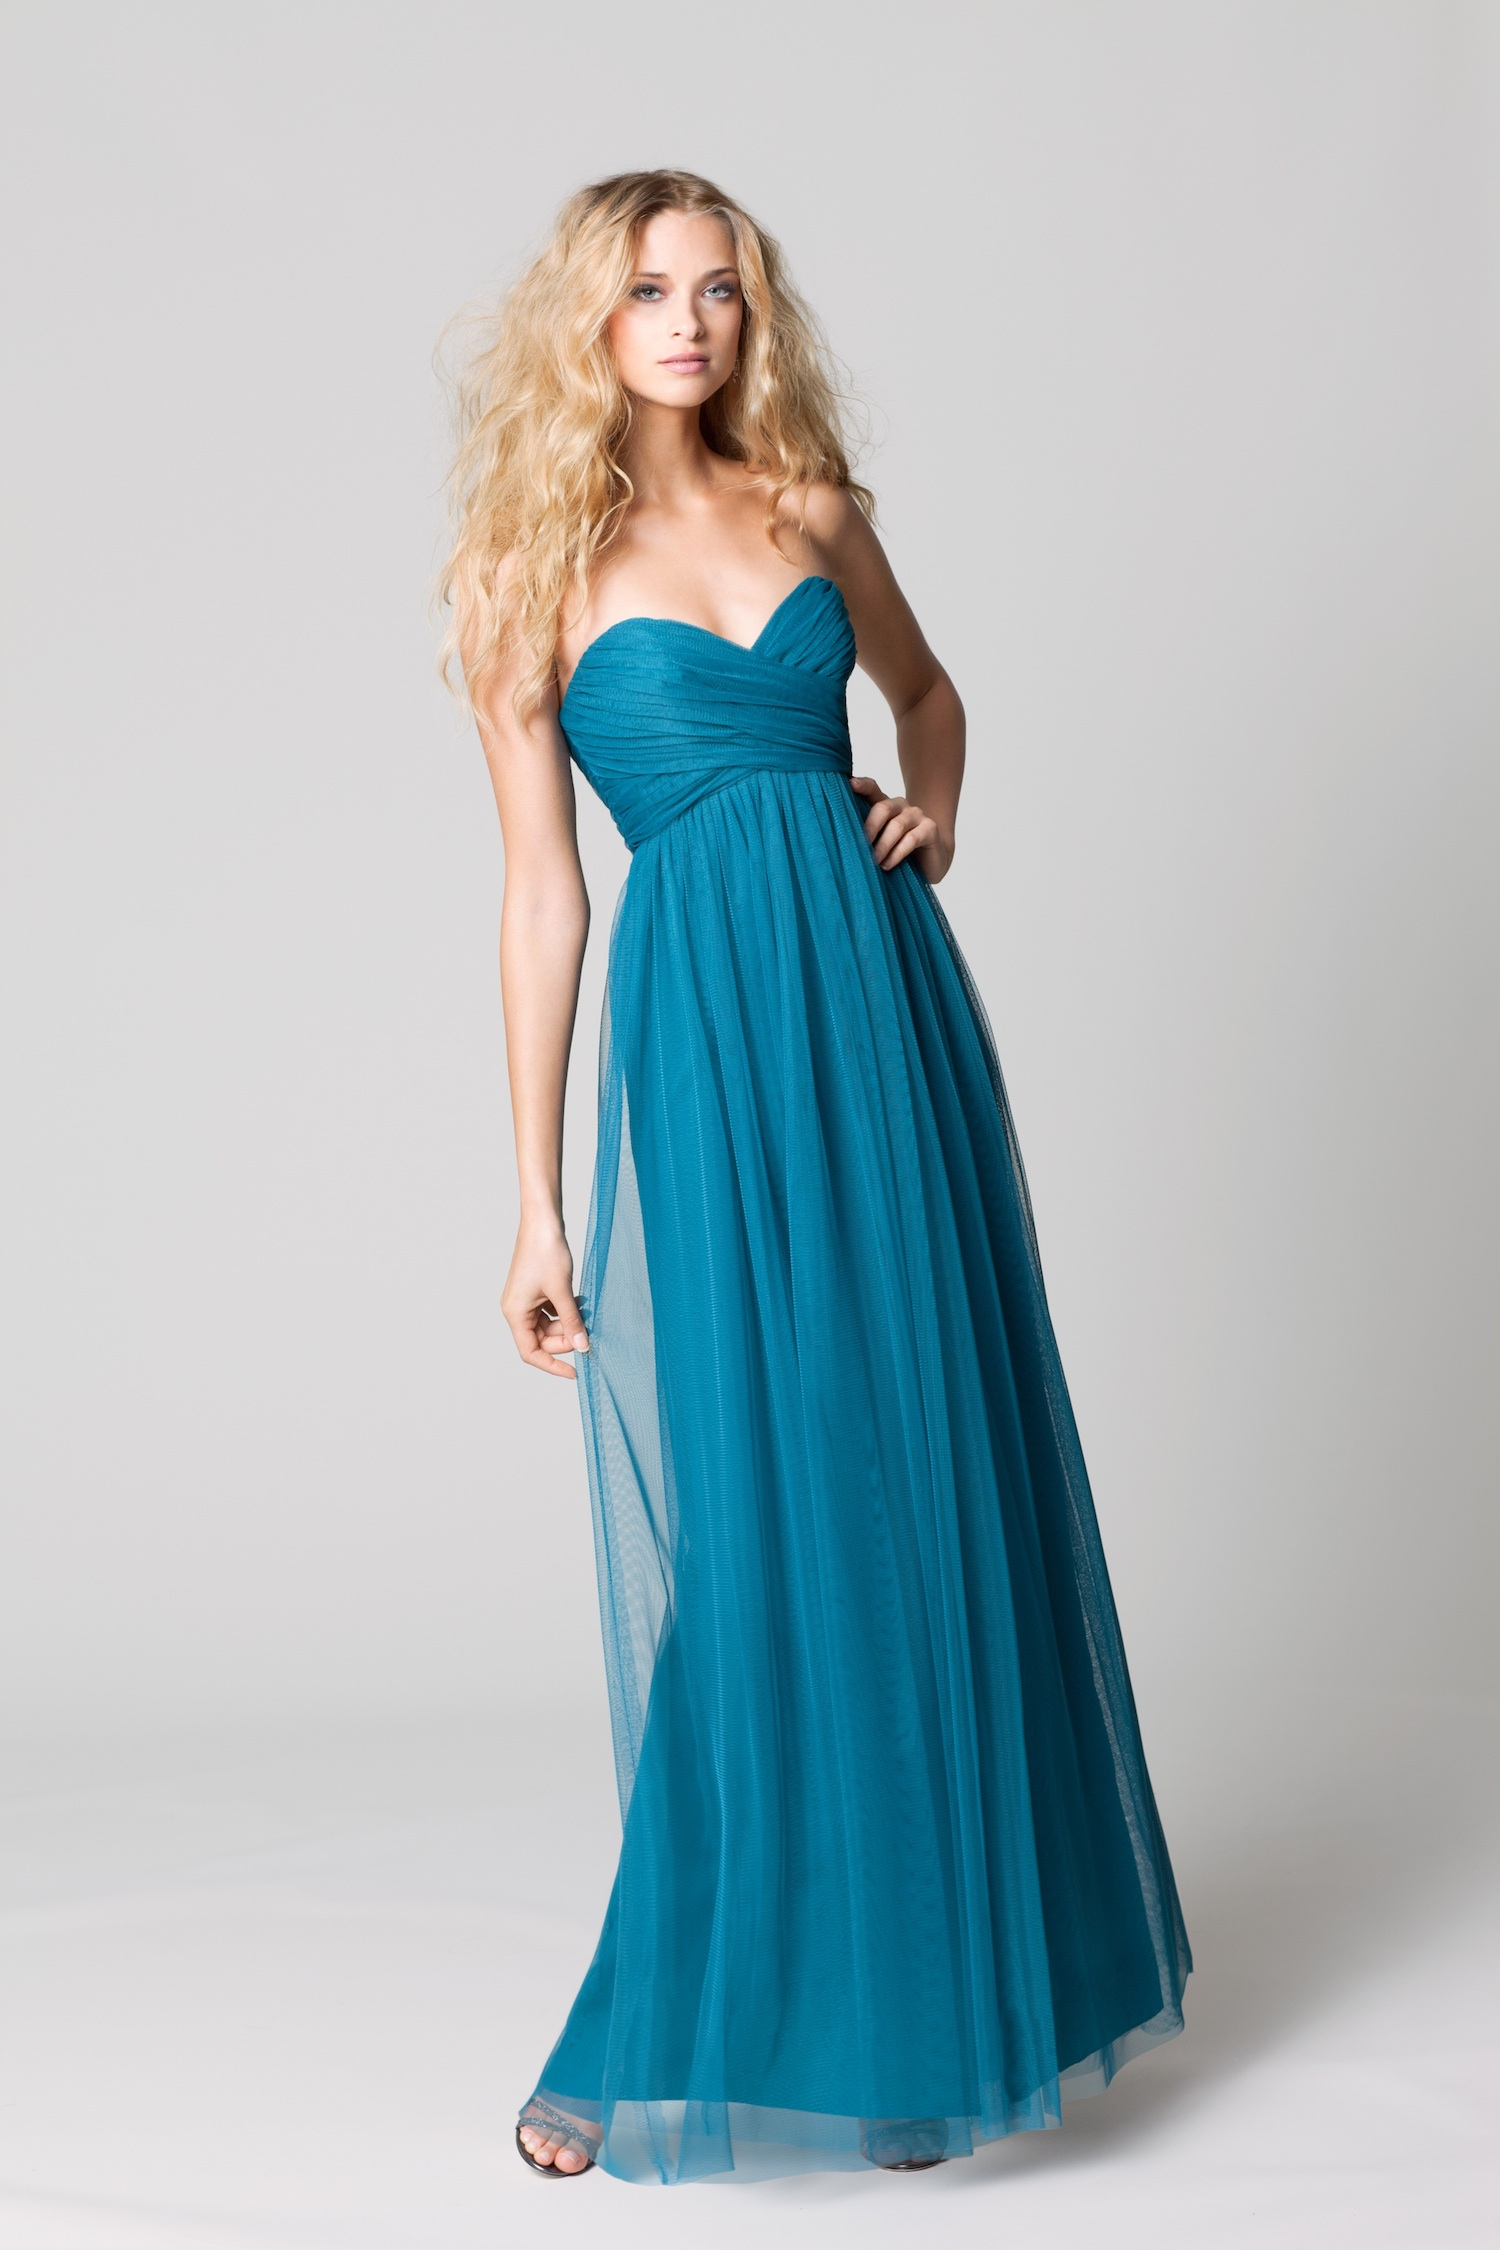 Affordable-bridesmaids-dresses-fall-2012-wtoo-by-watters-bridal-party-teal-long.original